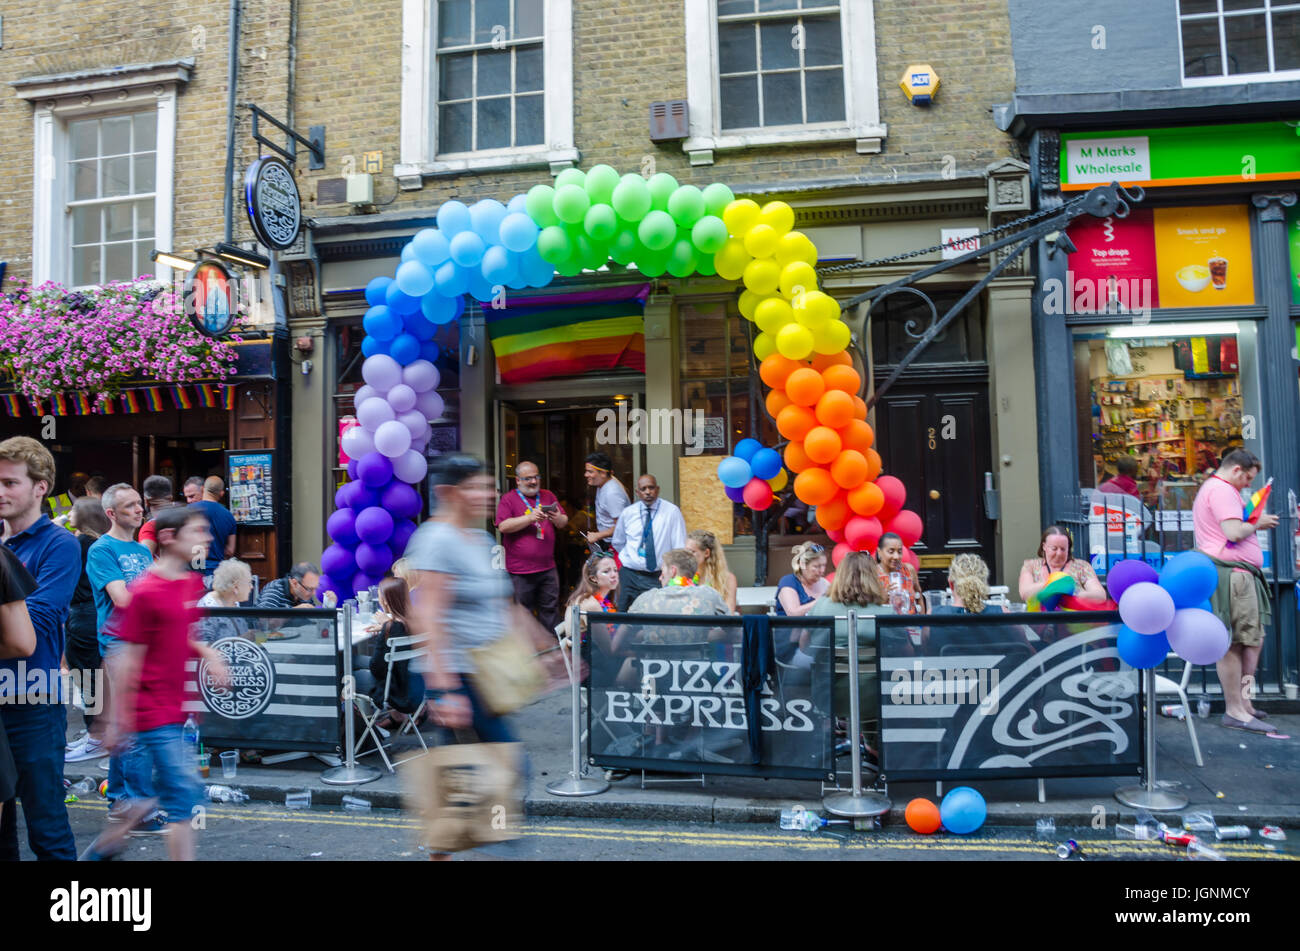 Pizza Express on Wardour Street in Soho, London has a colourful balloon arch as part of London Pride celebrations. - Stock Image